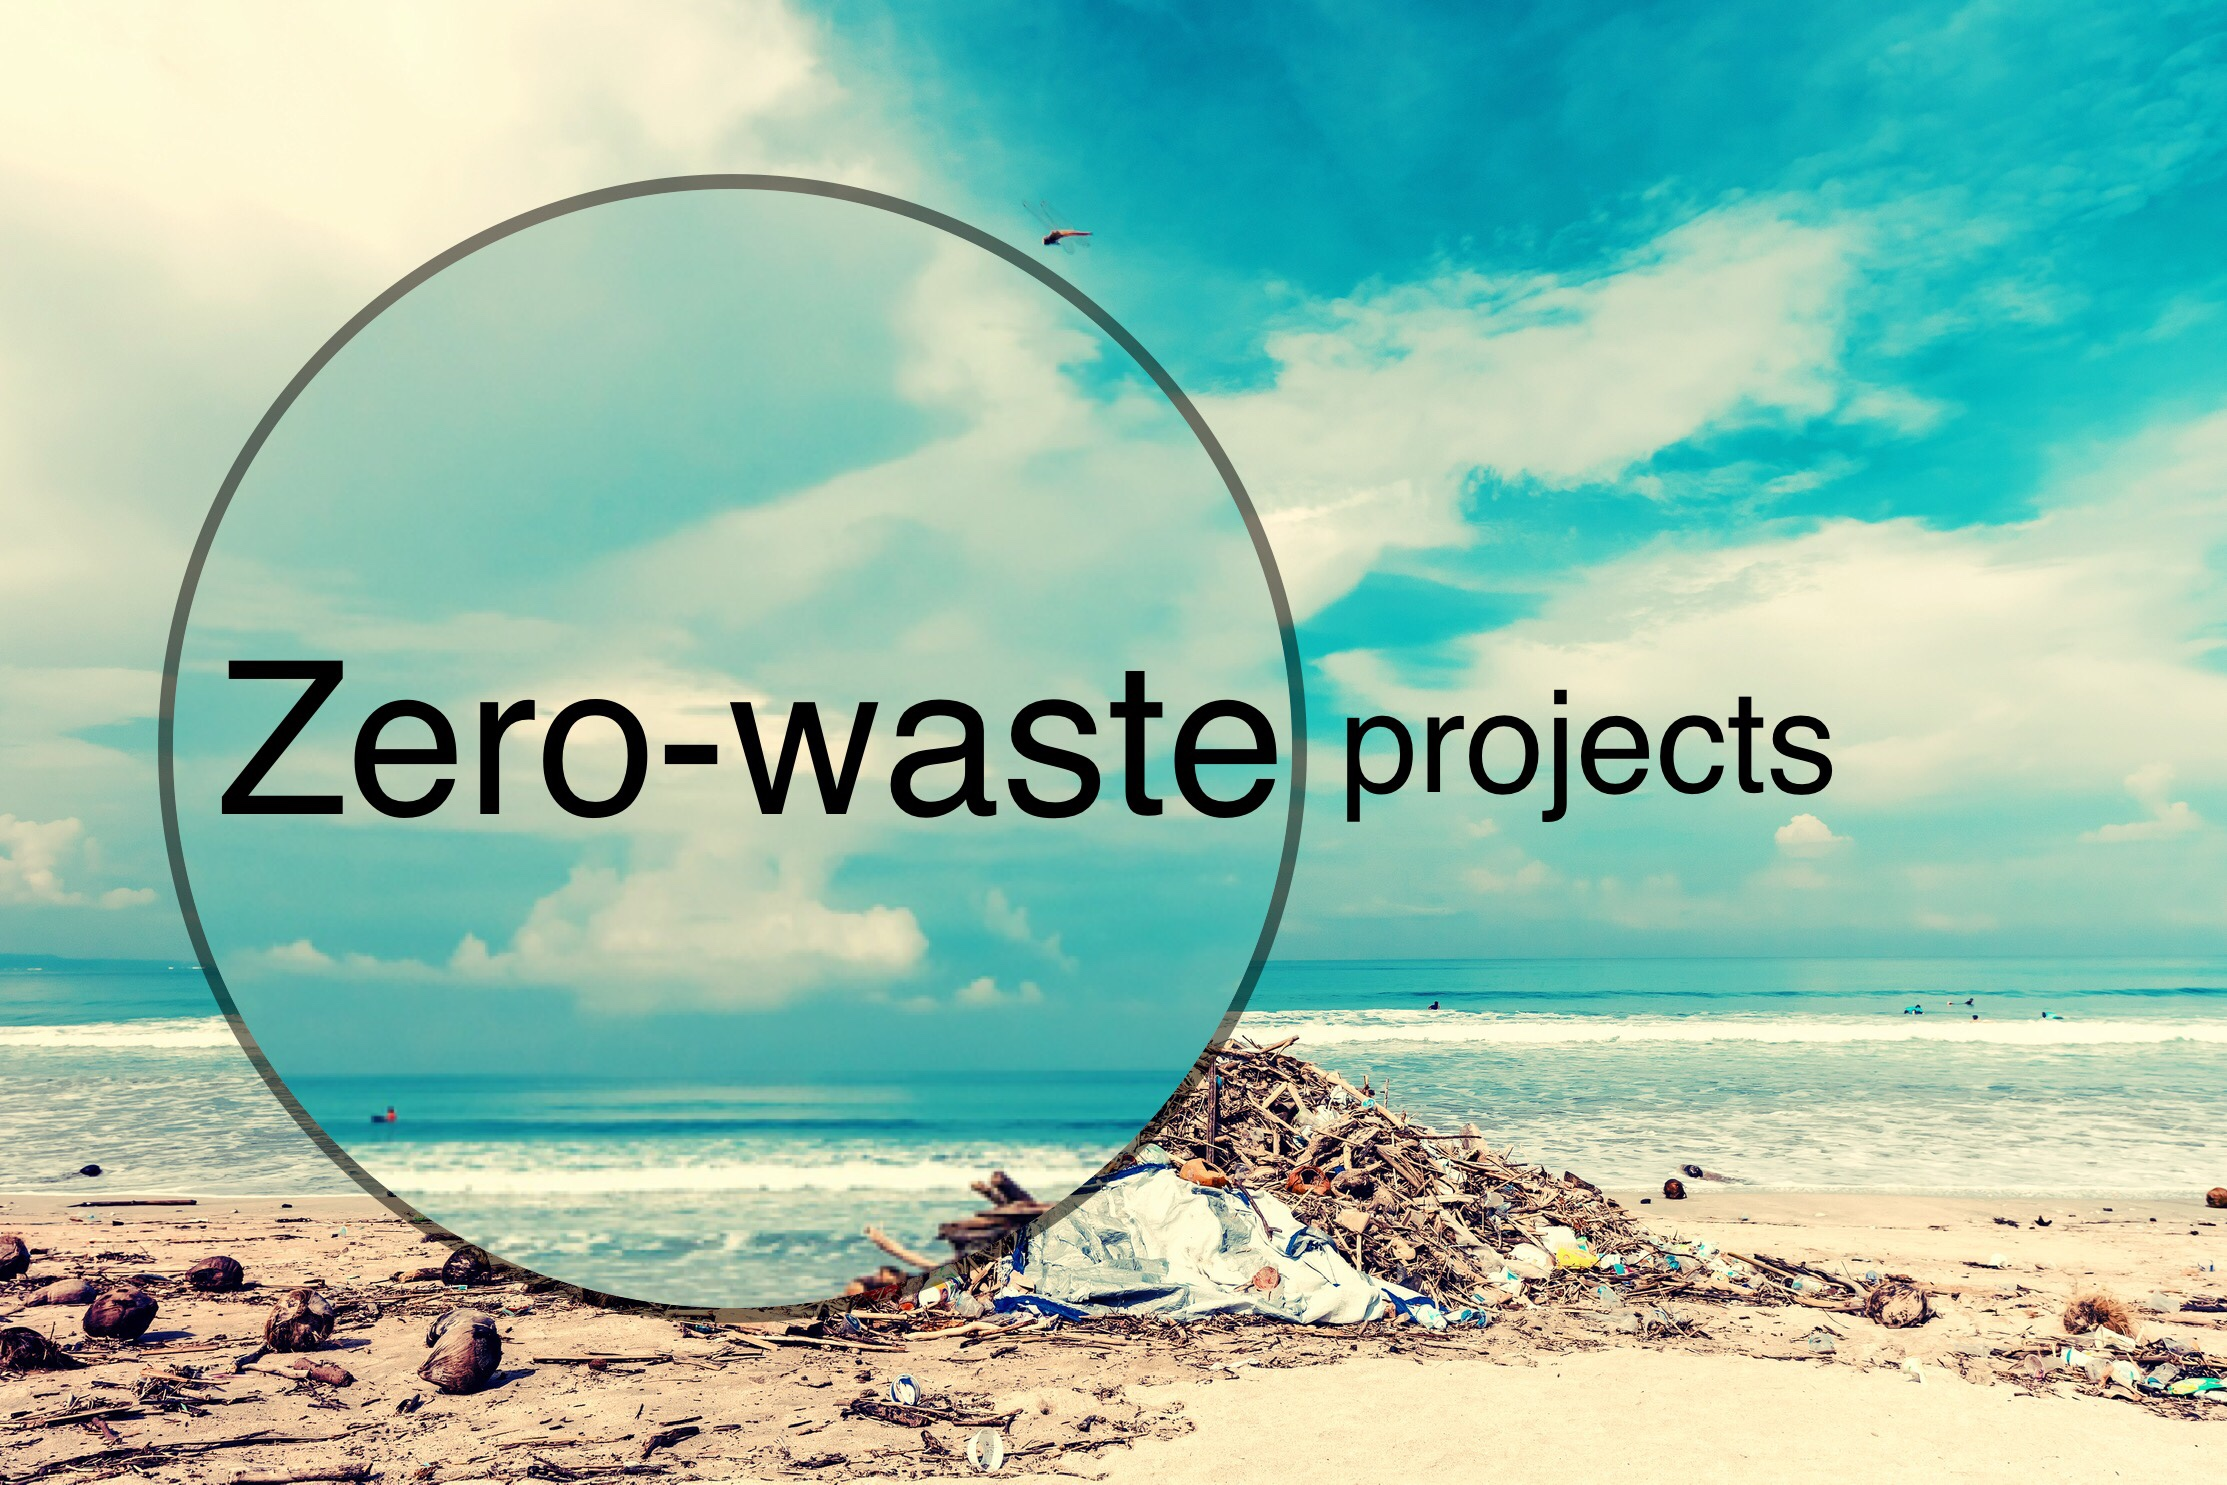 Zero-waste projects